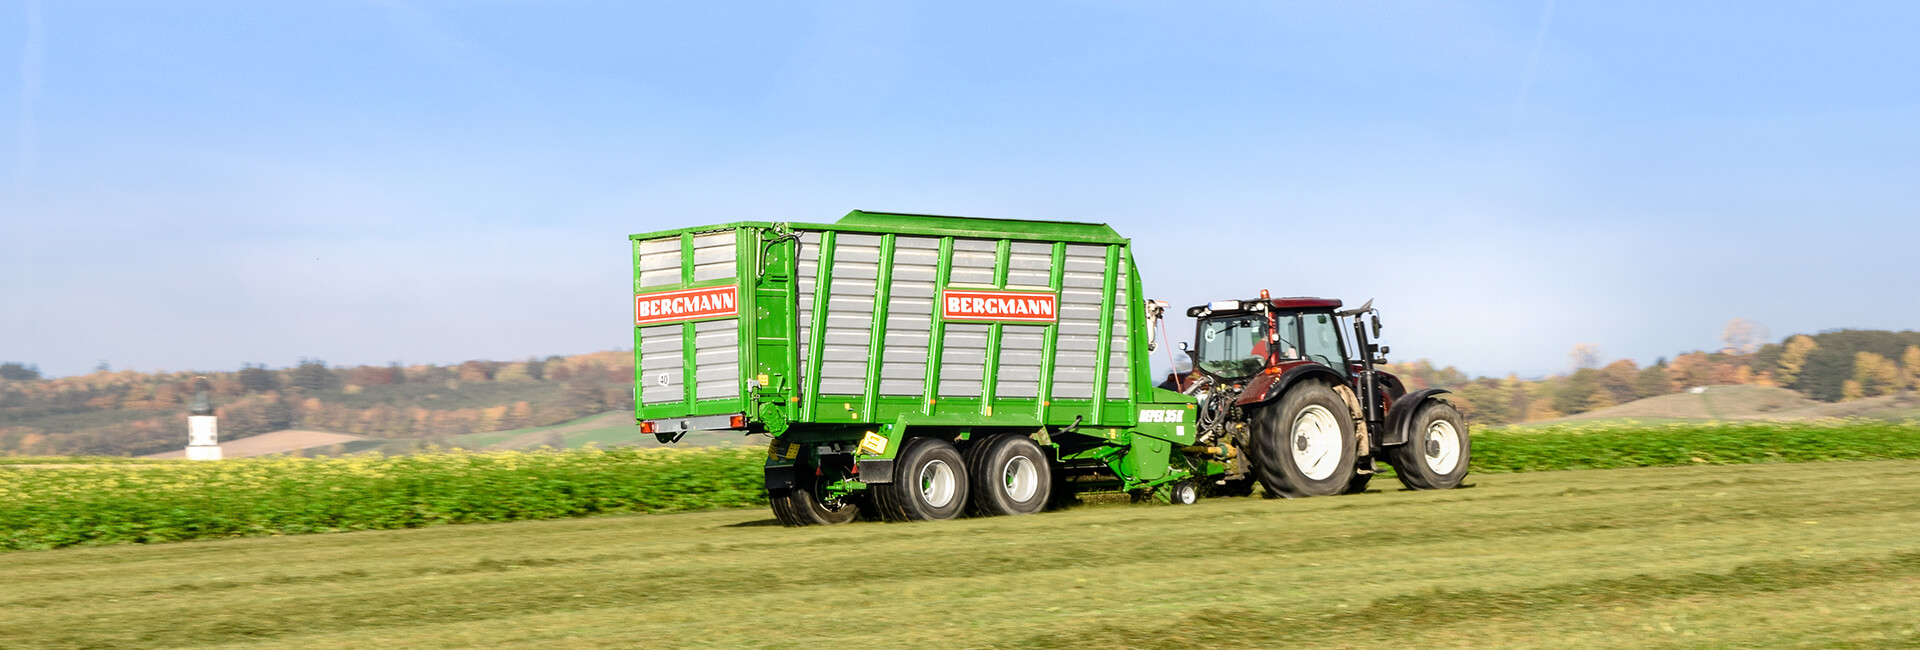 Valtra and Bergmann Silage loader Wagon